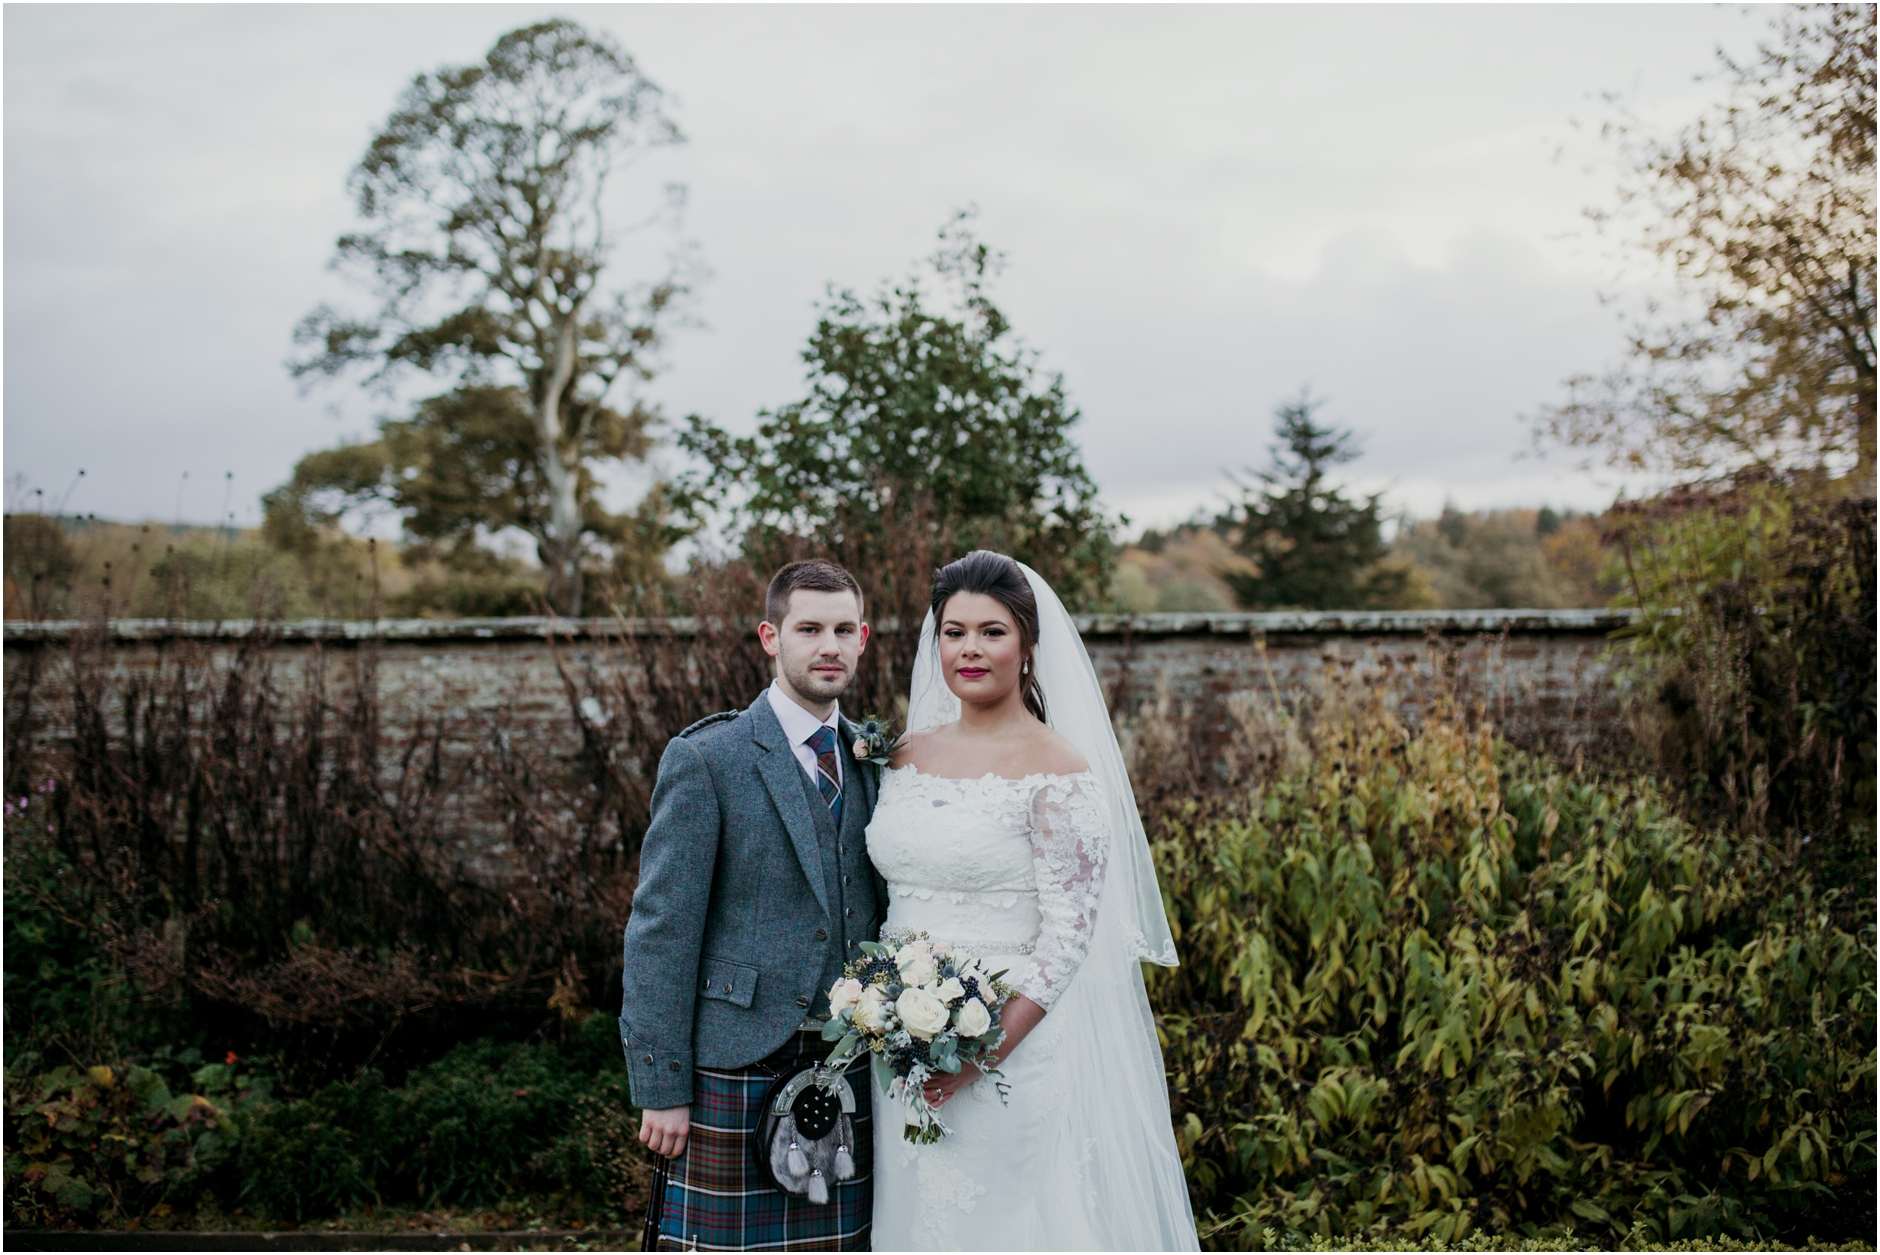 Winter garden aberdeen wedding